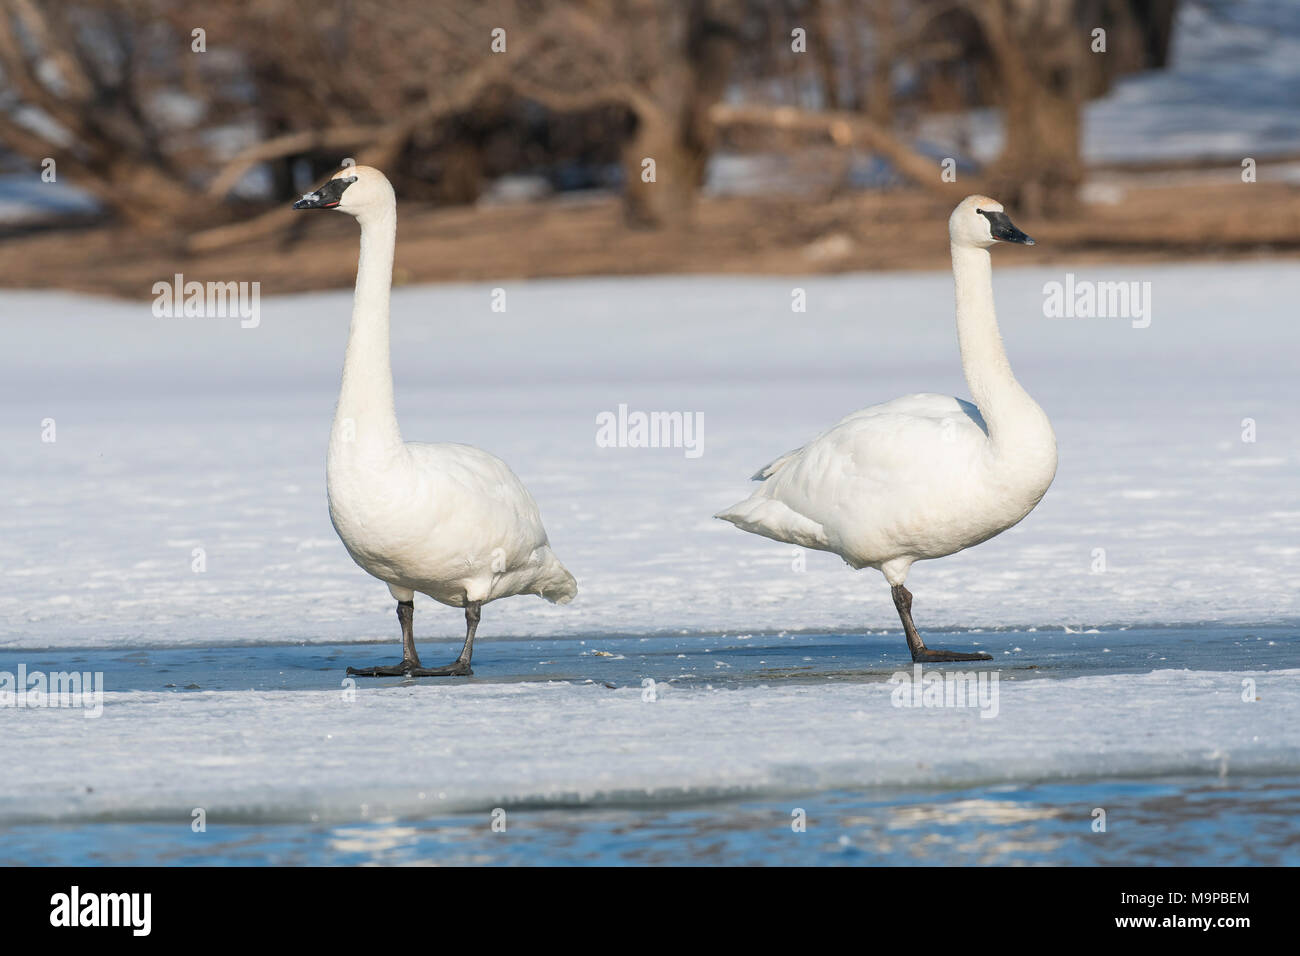 Trumpeter swans (Cygnus buccinator) standing on ice, St. Croix river, WI, USA, mid-March, by Dominique Braud/Dembinsky Photo Assoc - Stock Image